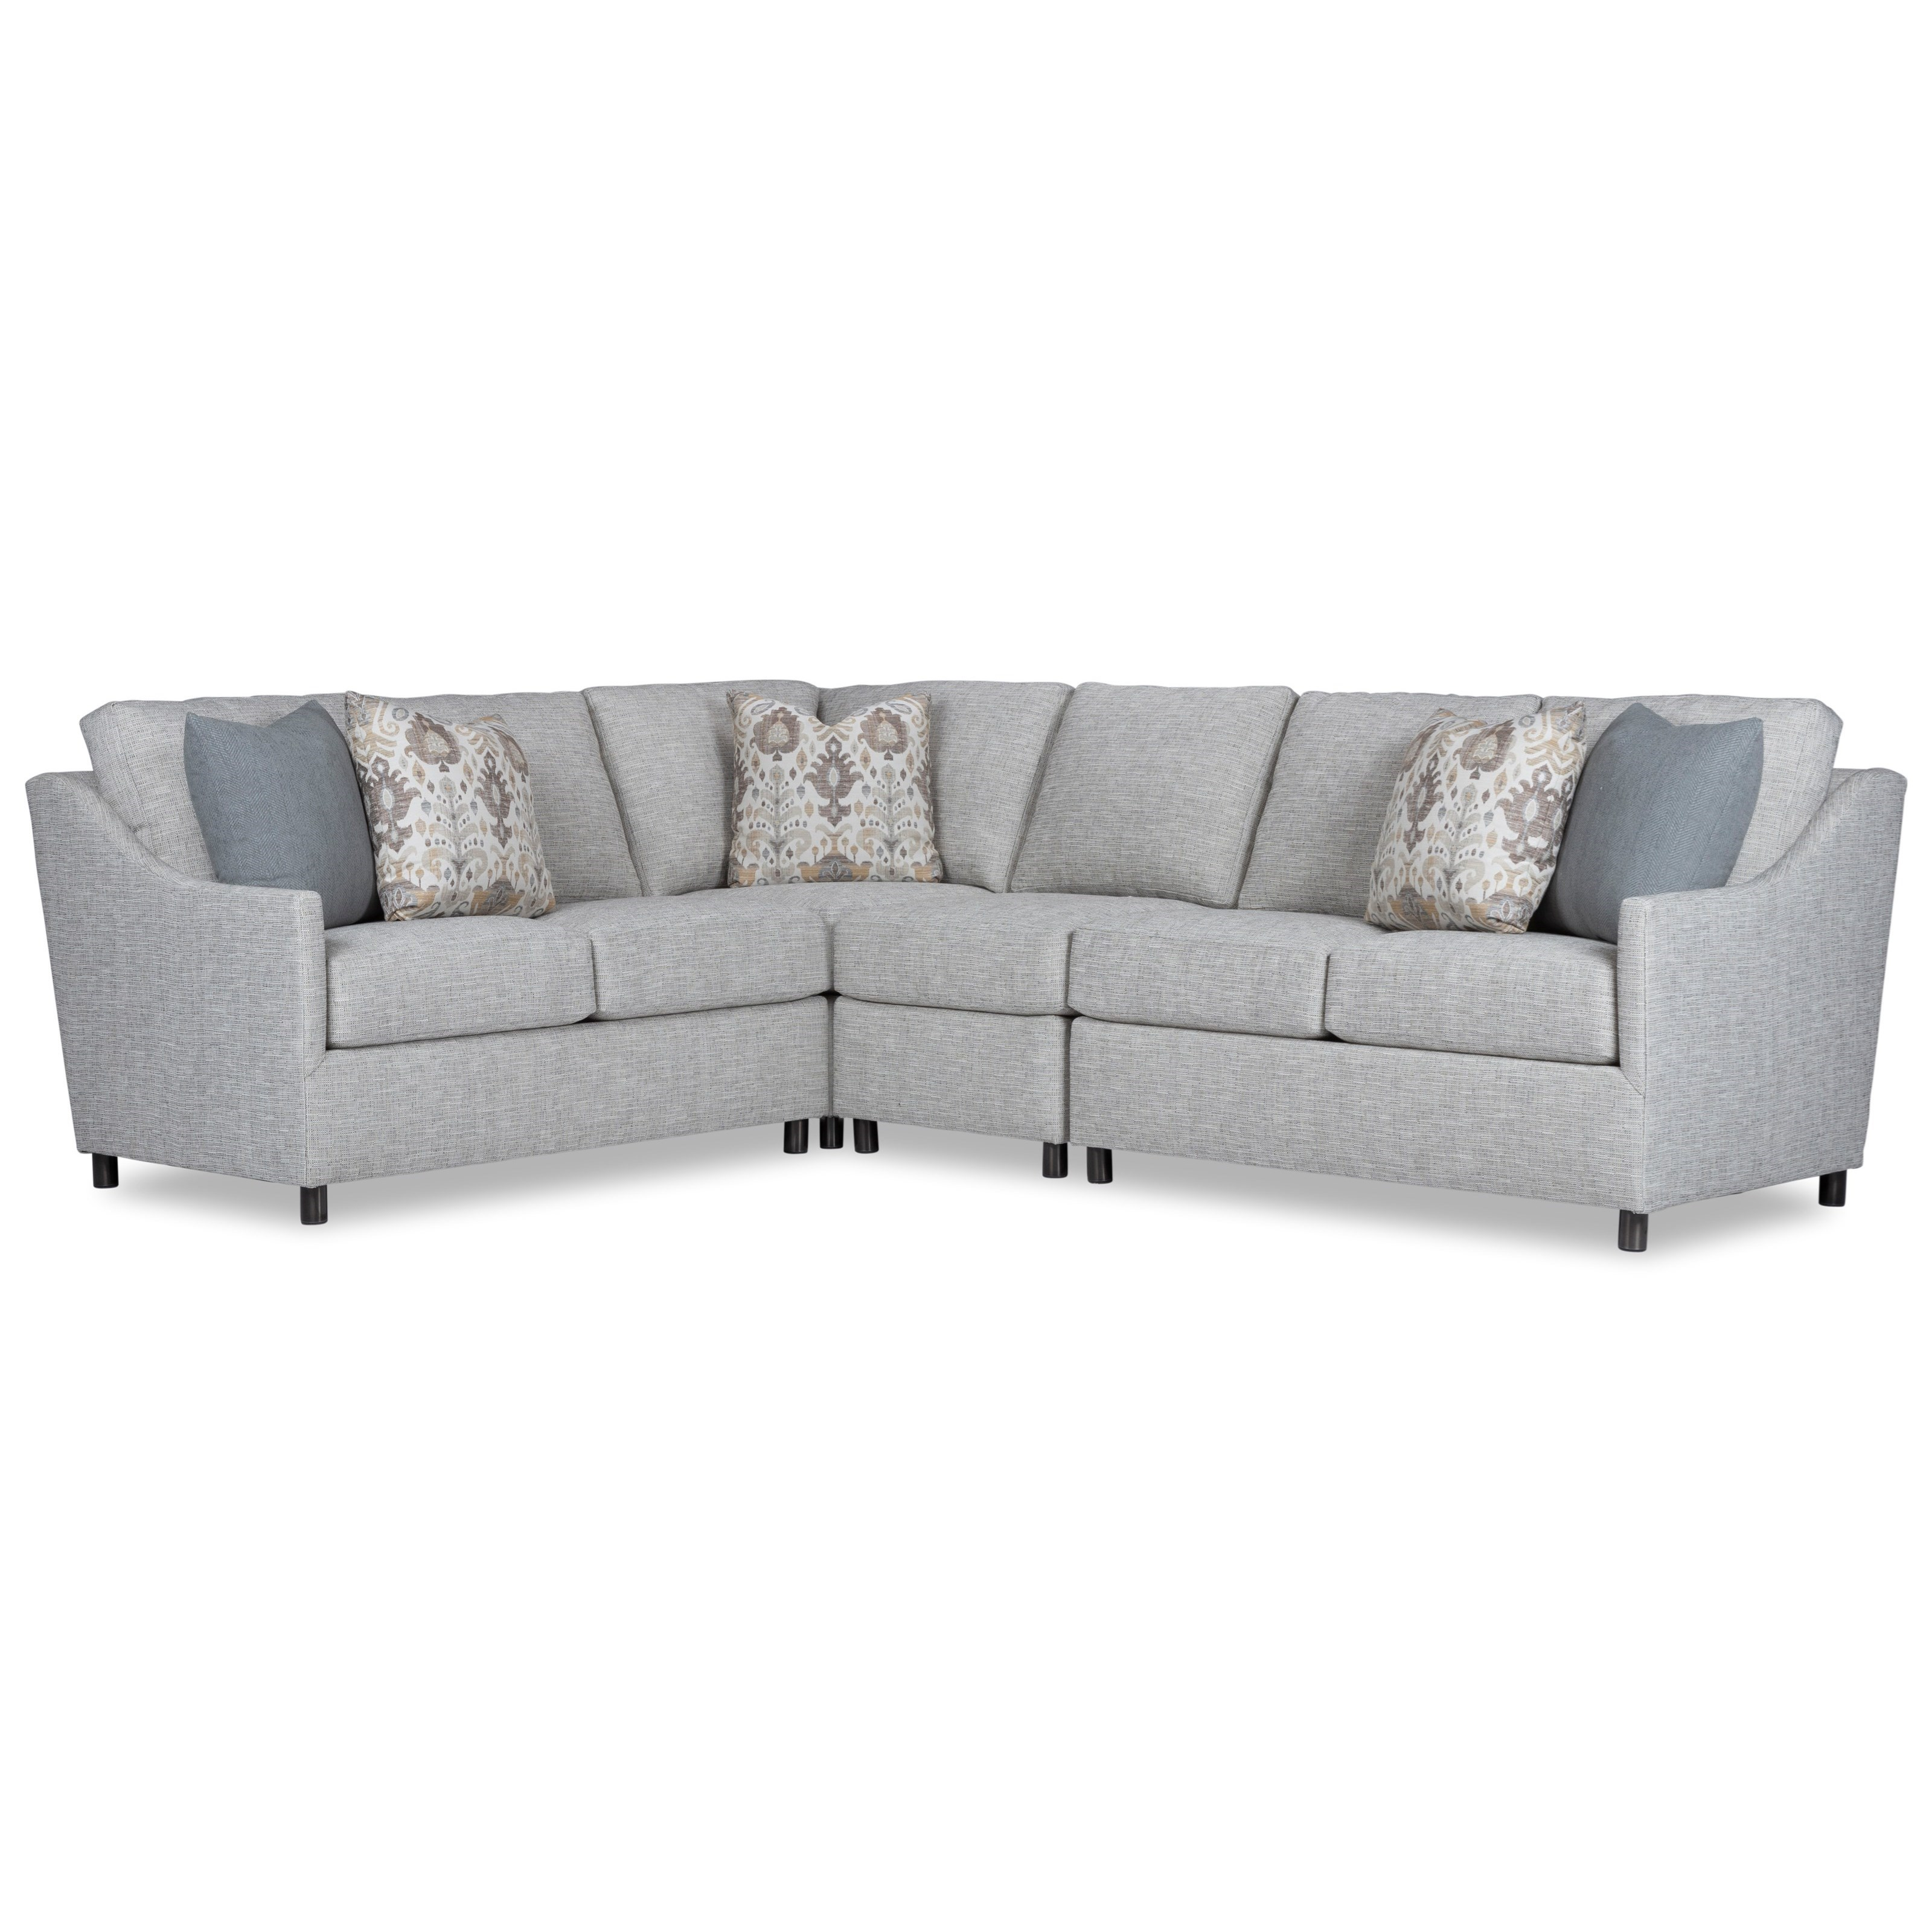 9101 Outdoor Sectional by Geoffrey Alexander at Sprintz Furniture